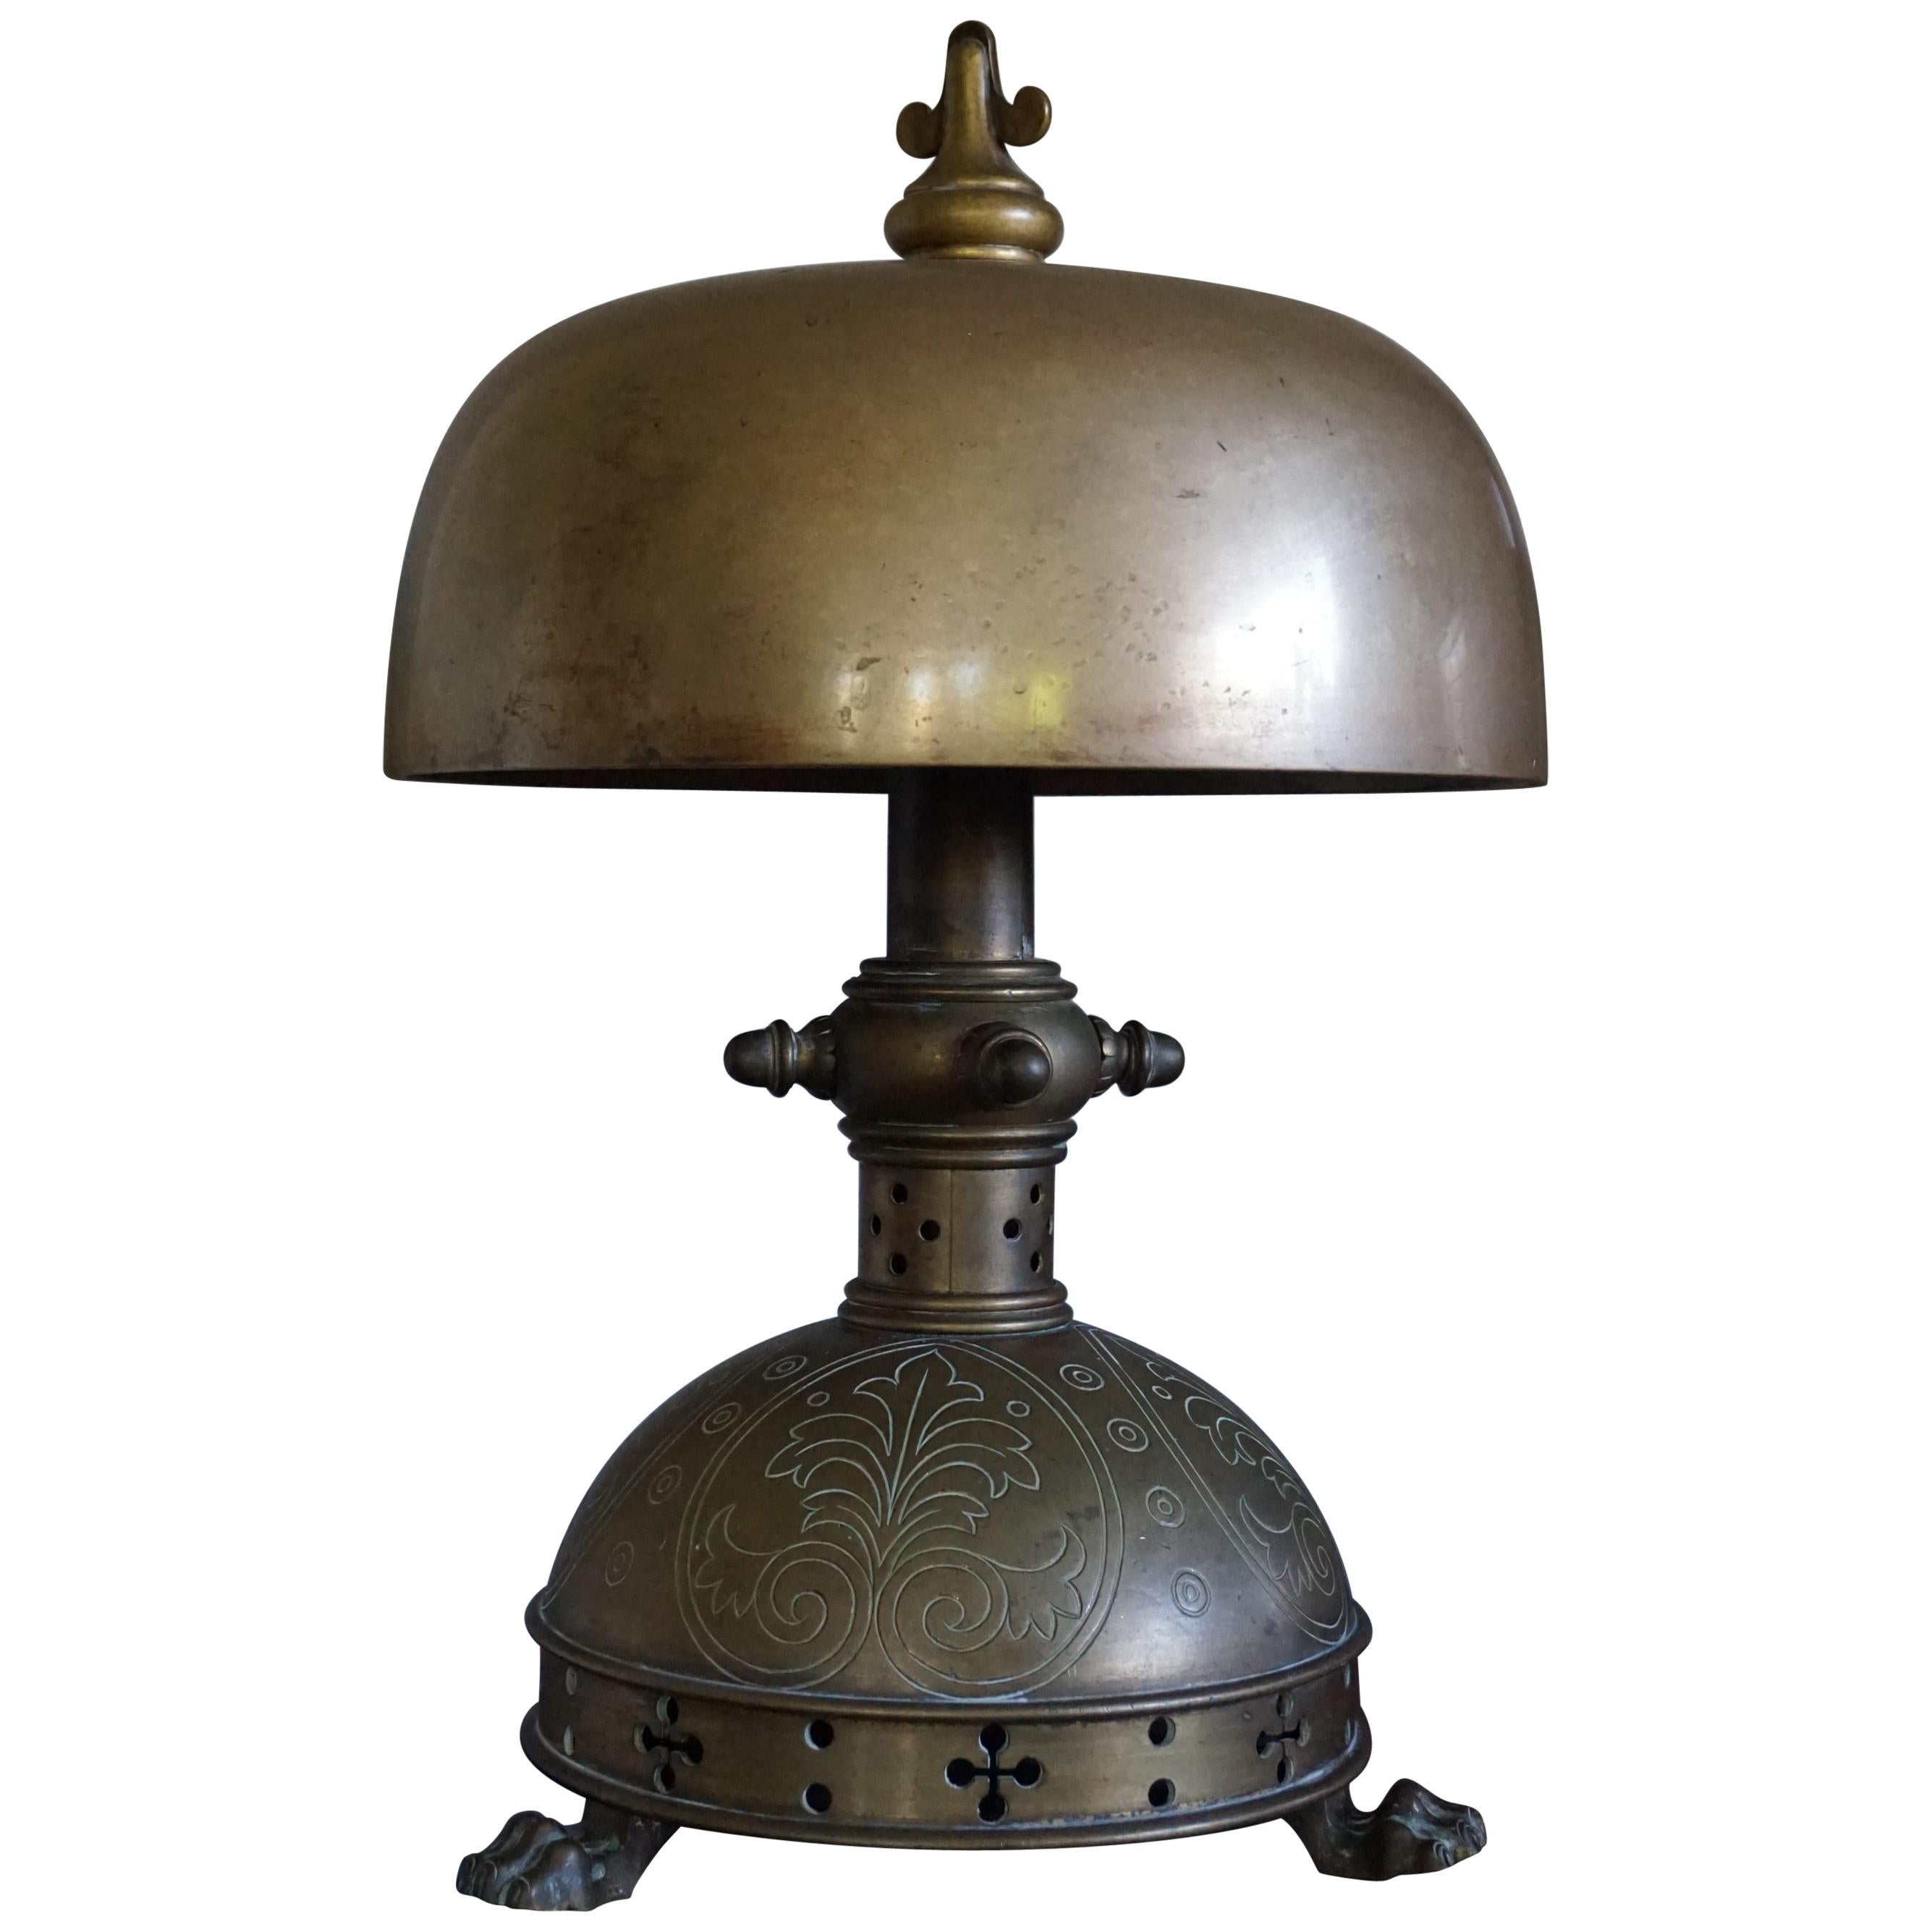 Unique 1800s Gothic Revival Bronze Church Altar Gong Also Usable as Table Lamp